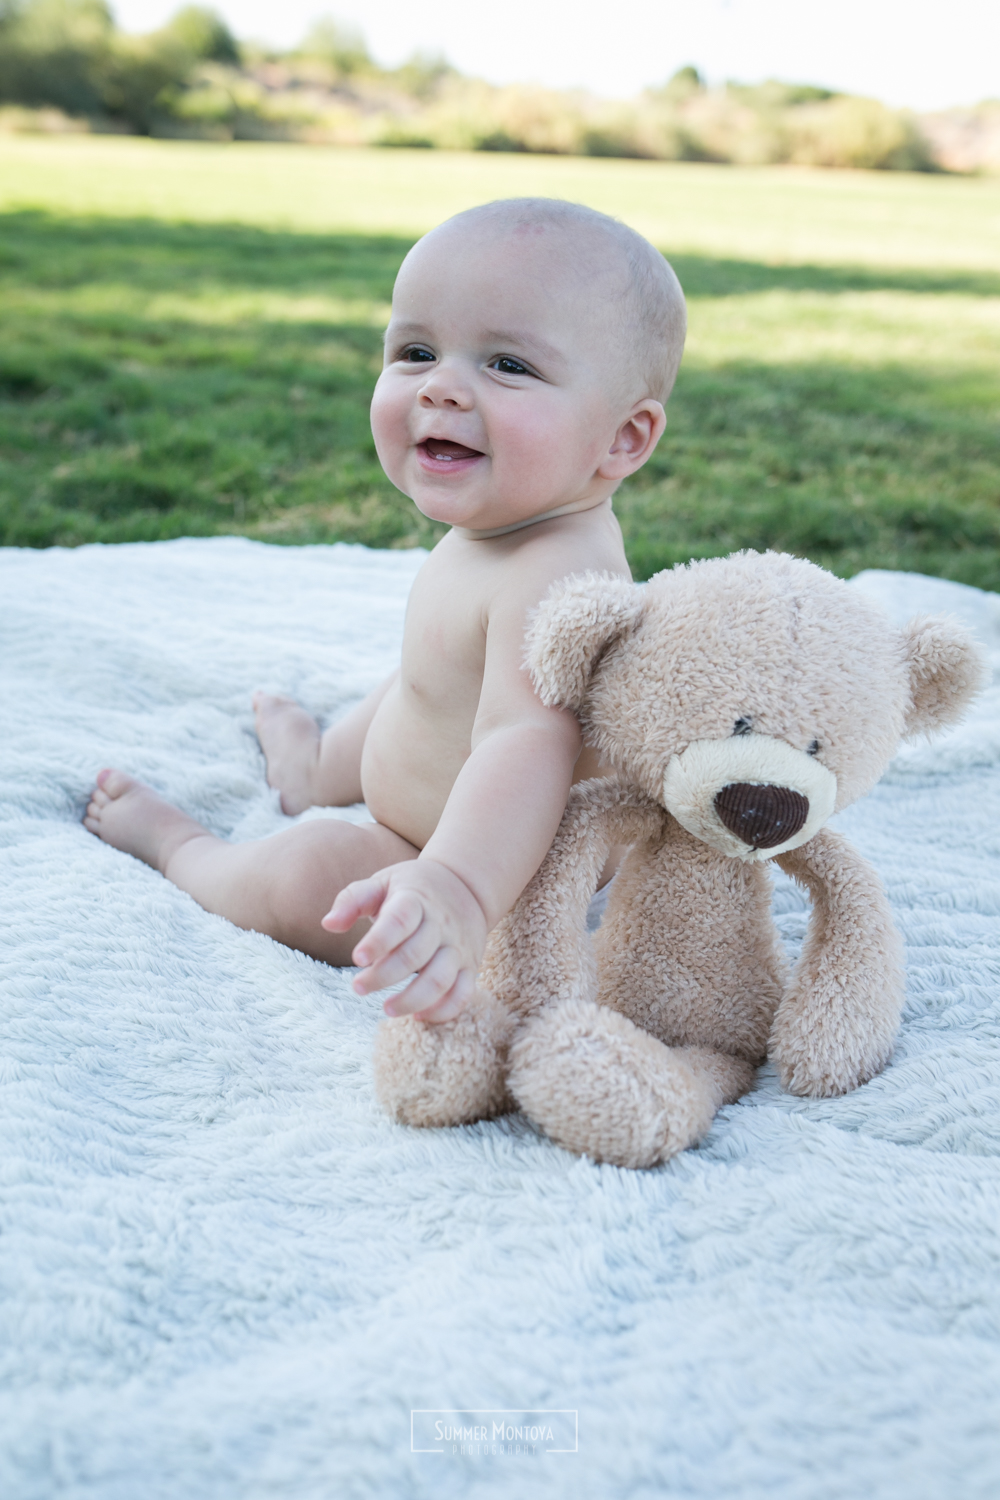 6month-baby-photo (12 of 40).jpg